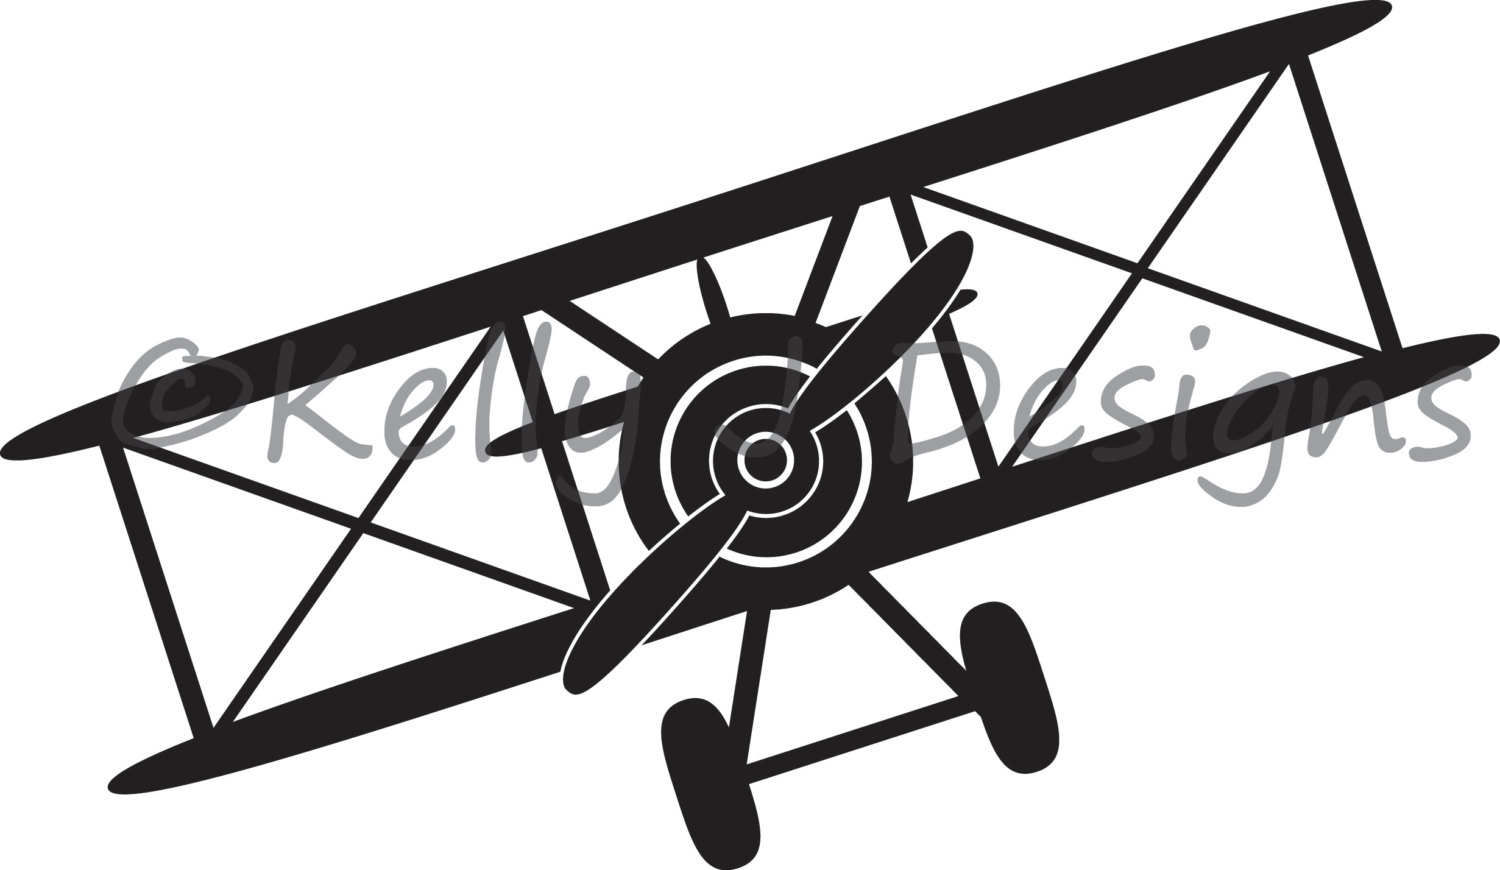 1500x870 Biplane Dxf Cutting File And Png Clipart File From Kjdpatterns